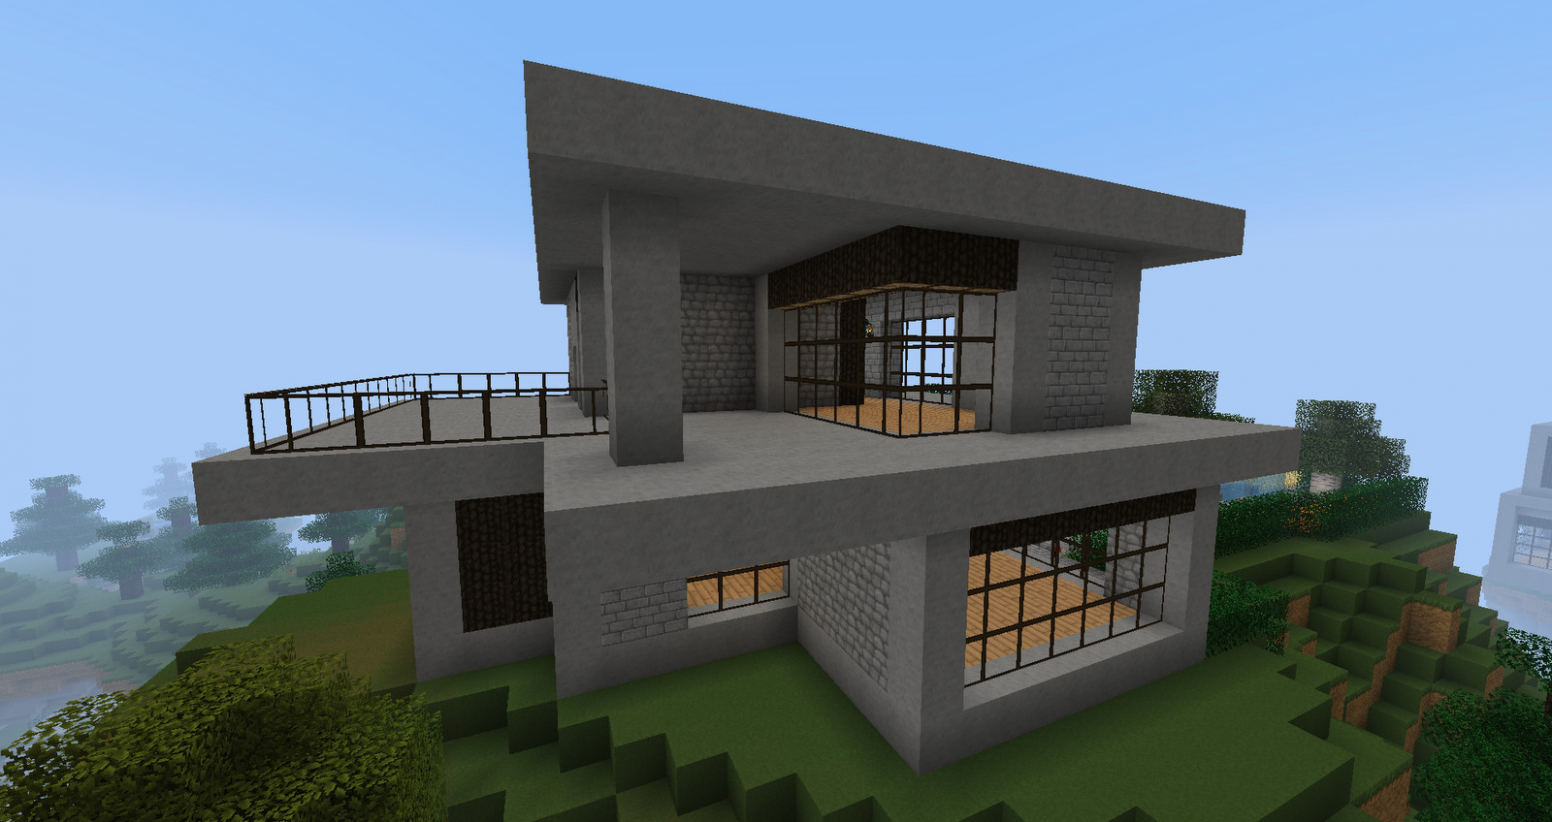 Minecraft Cool Simple Houses New Easy Minecraft Houses On ..